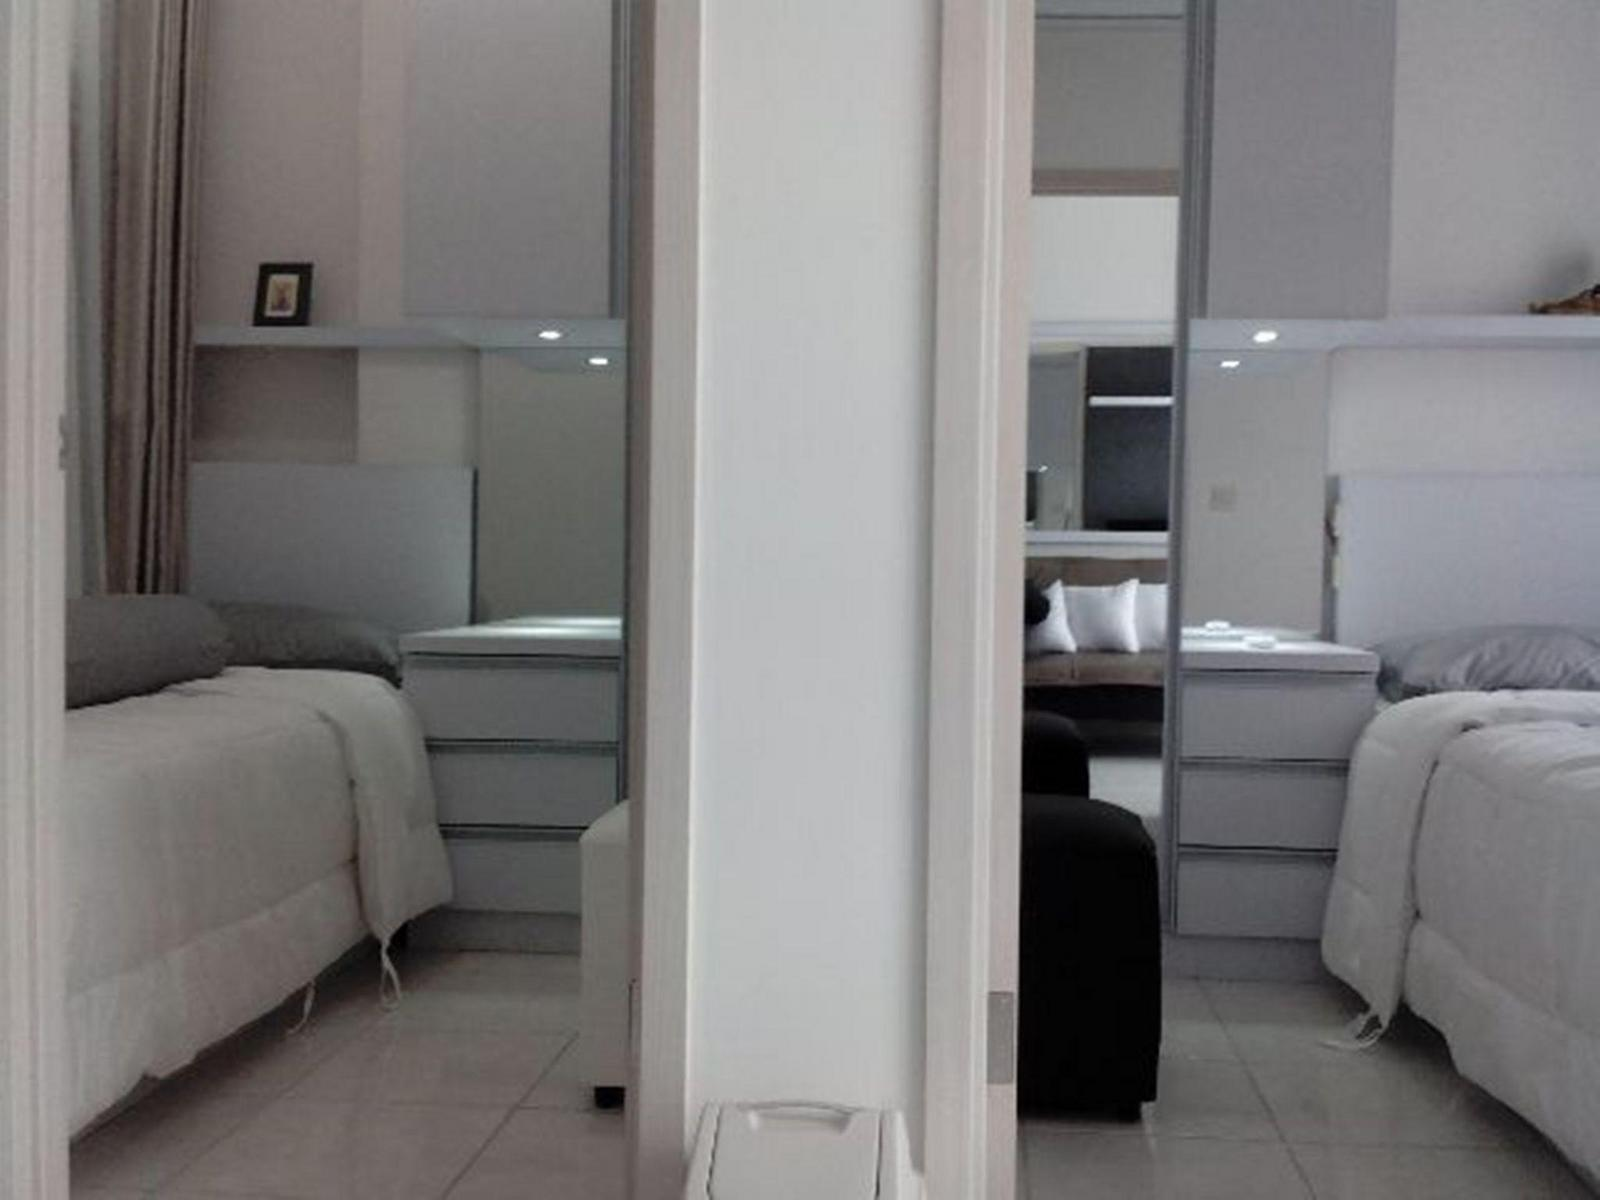 Grand Center Point Bekasi - 2BR Deluxe Grand Centerpoint Apartment